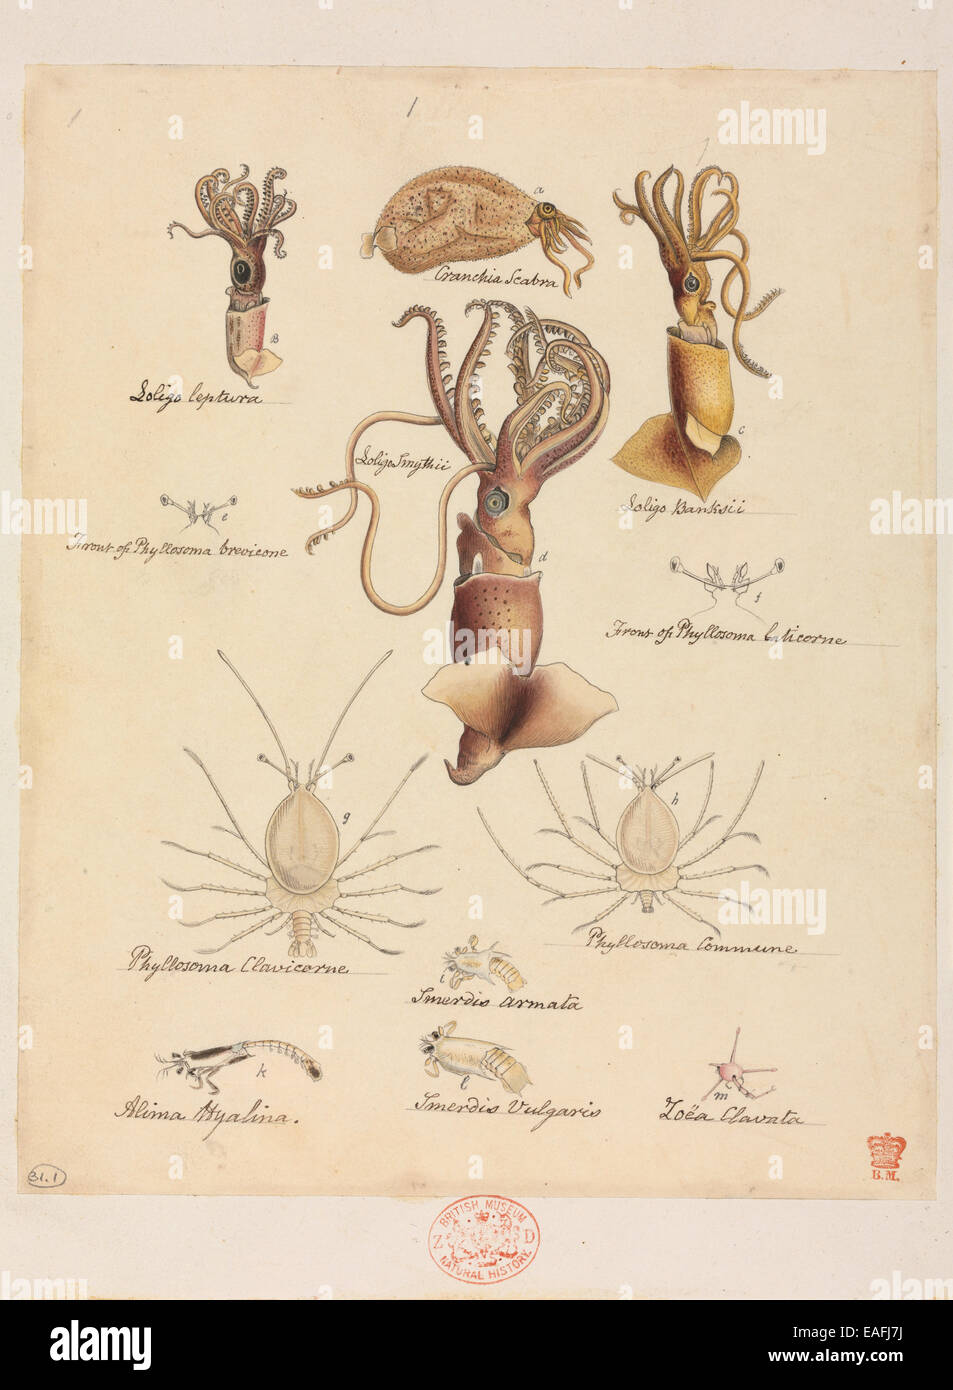 Various Mollusca and Crustacea species, including Loligo sp. squids and Phyllosoma lobsters - Stock Image